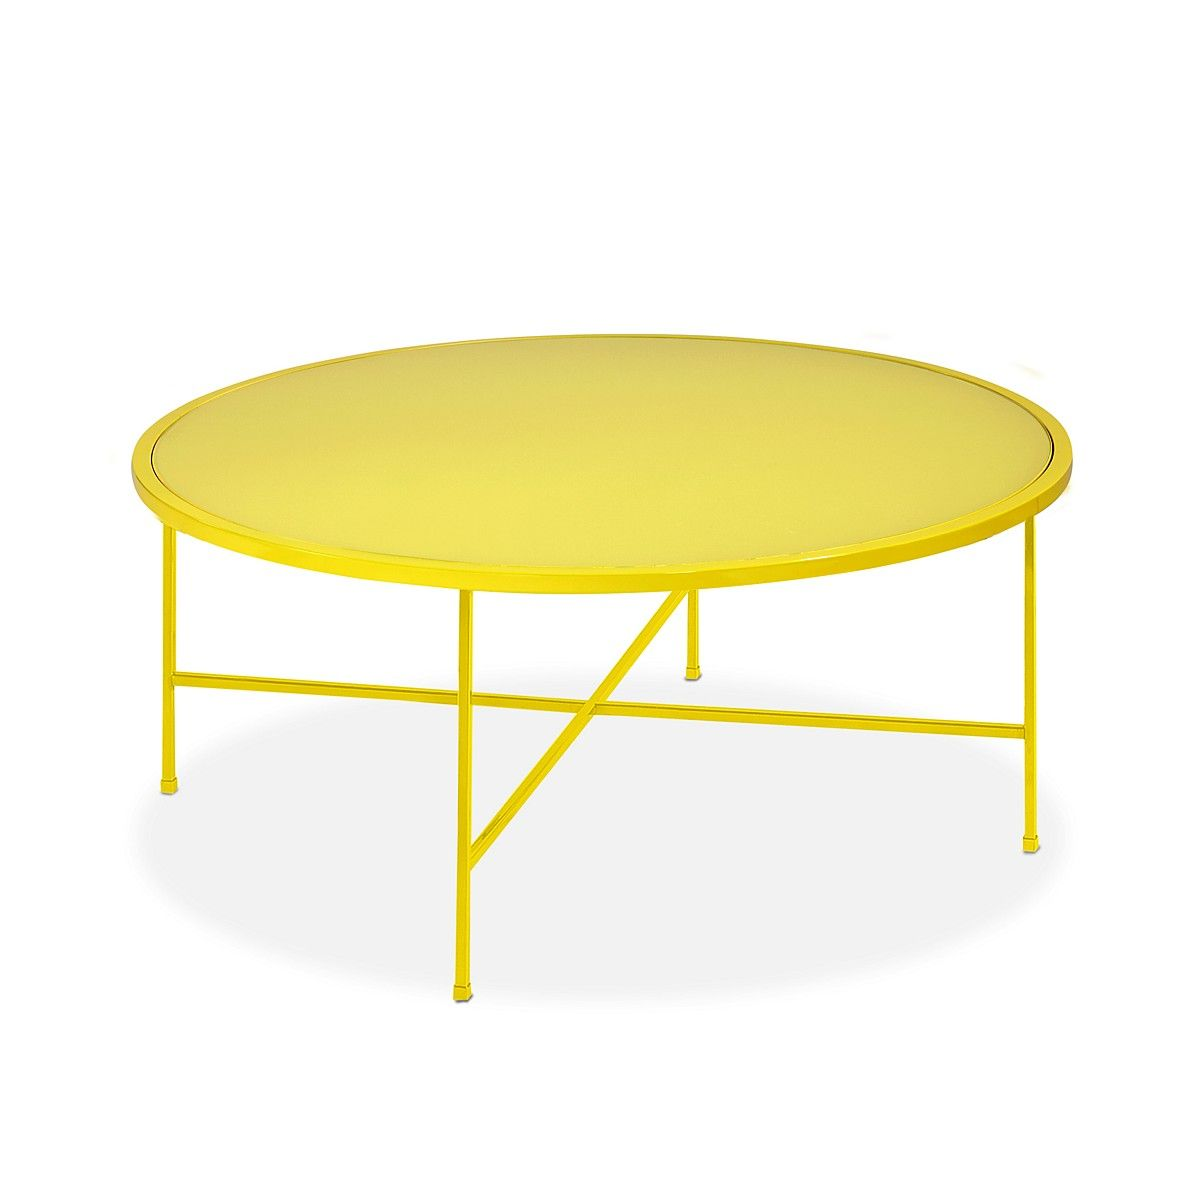 Bloomingdales Round Cocktail Table | Bloomingdales #magazinemonday